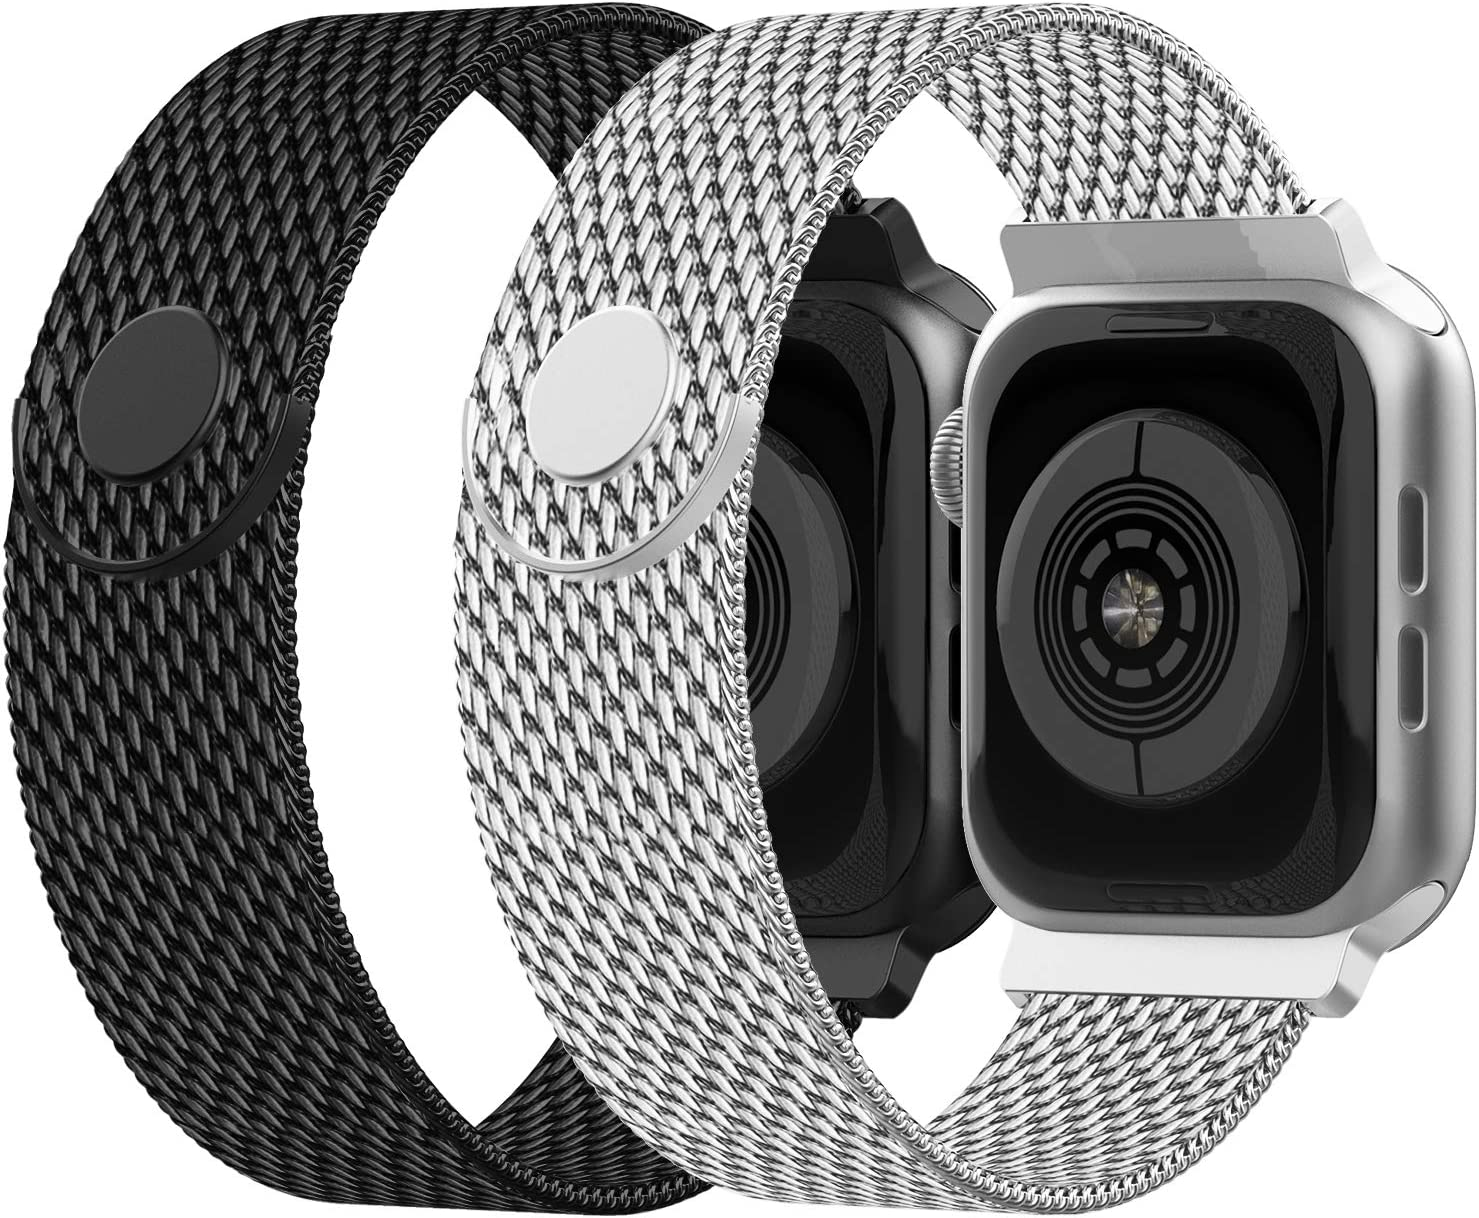 iGK Compatible with Apple Watch Band 38mm 40mm 42mm 44mm, Stainless Steel Mesh Loop Replacement Wristbands Compatible for iWatch Series 5 4 3 2 1